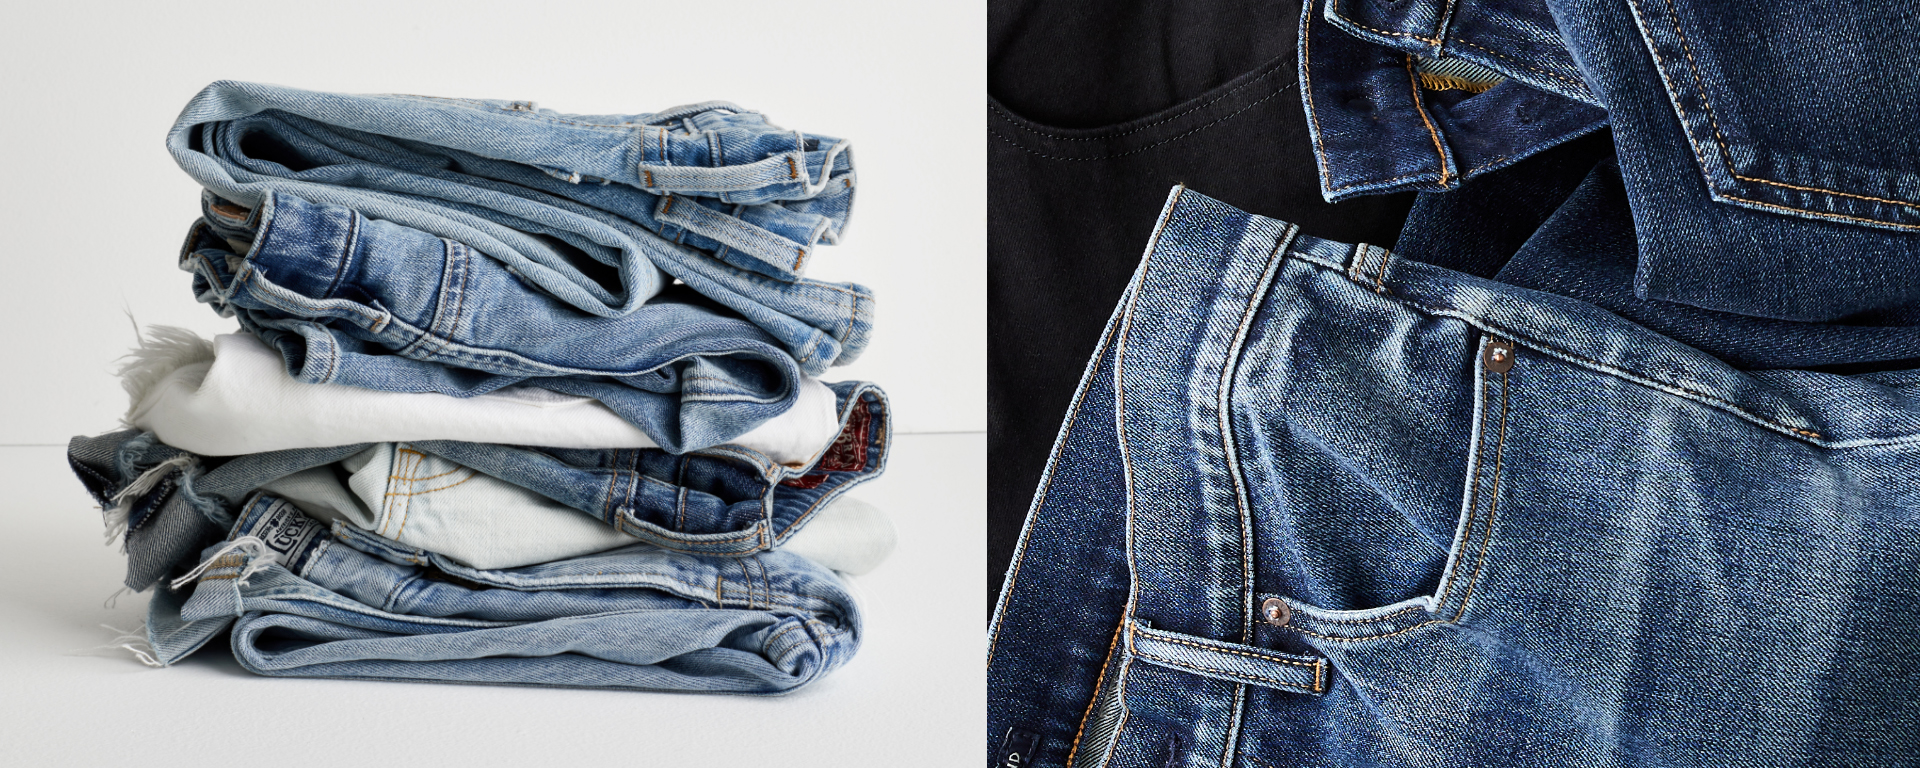 Buy One, Get One<br>50% Off  Jeans